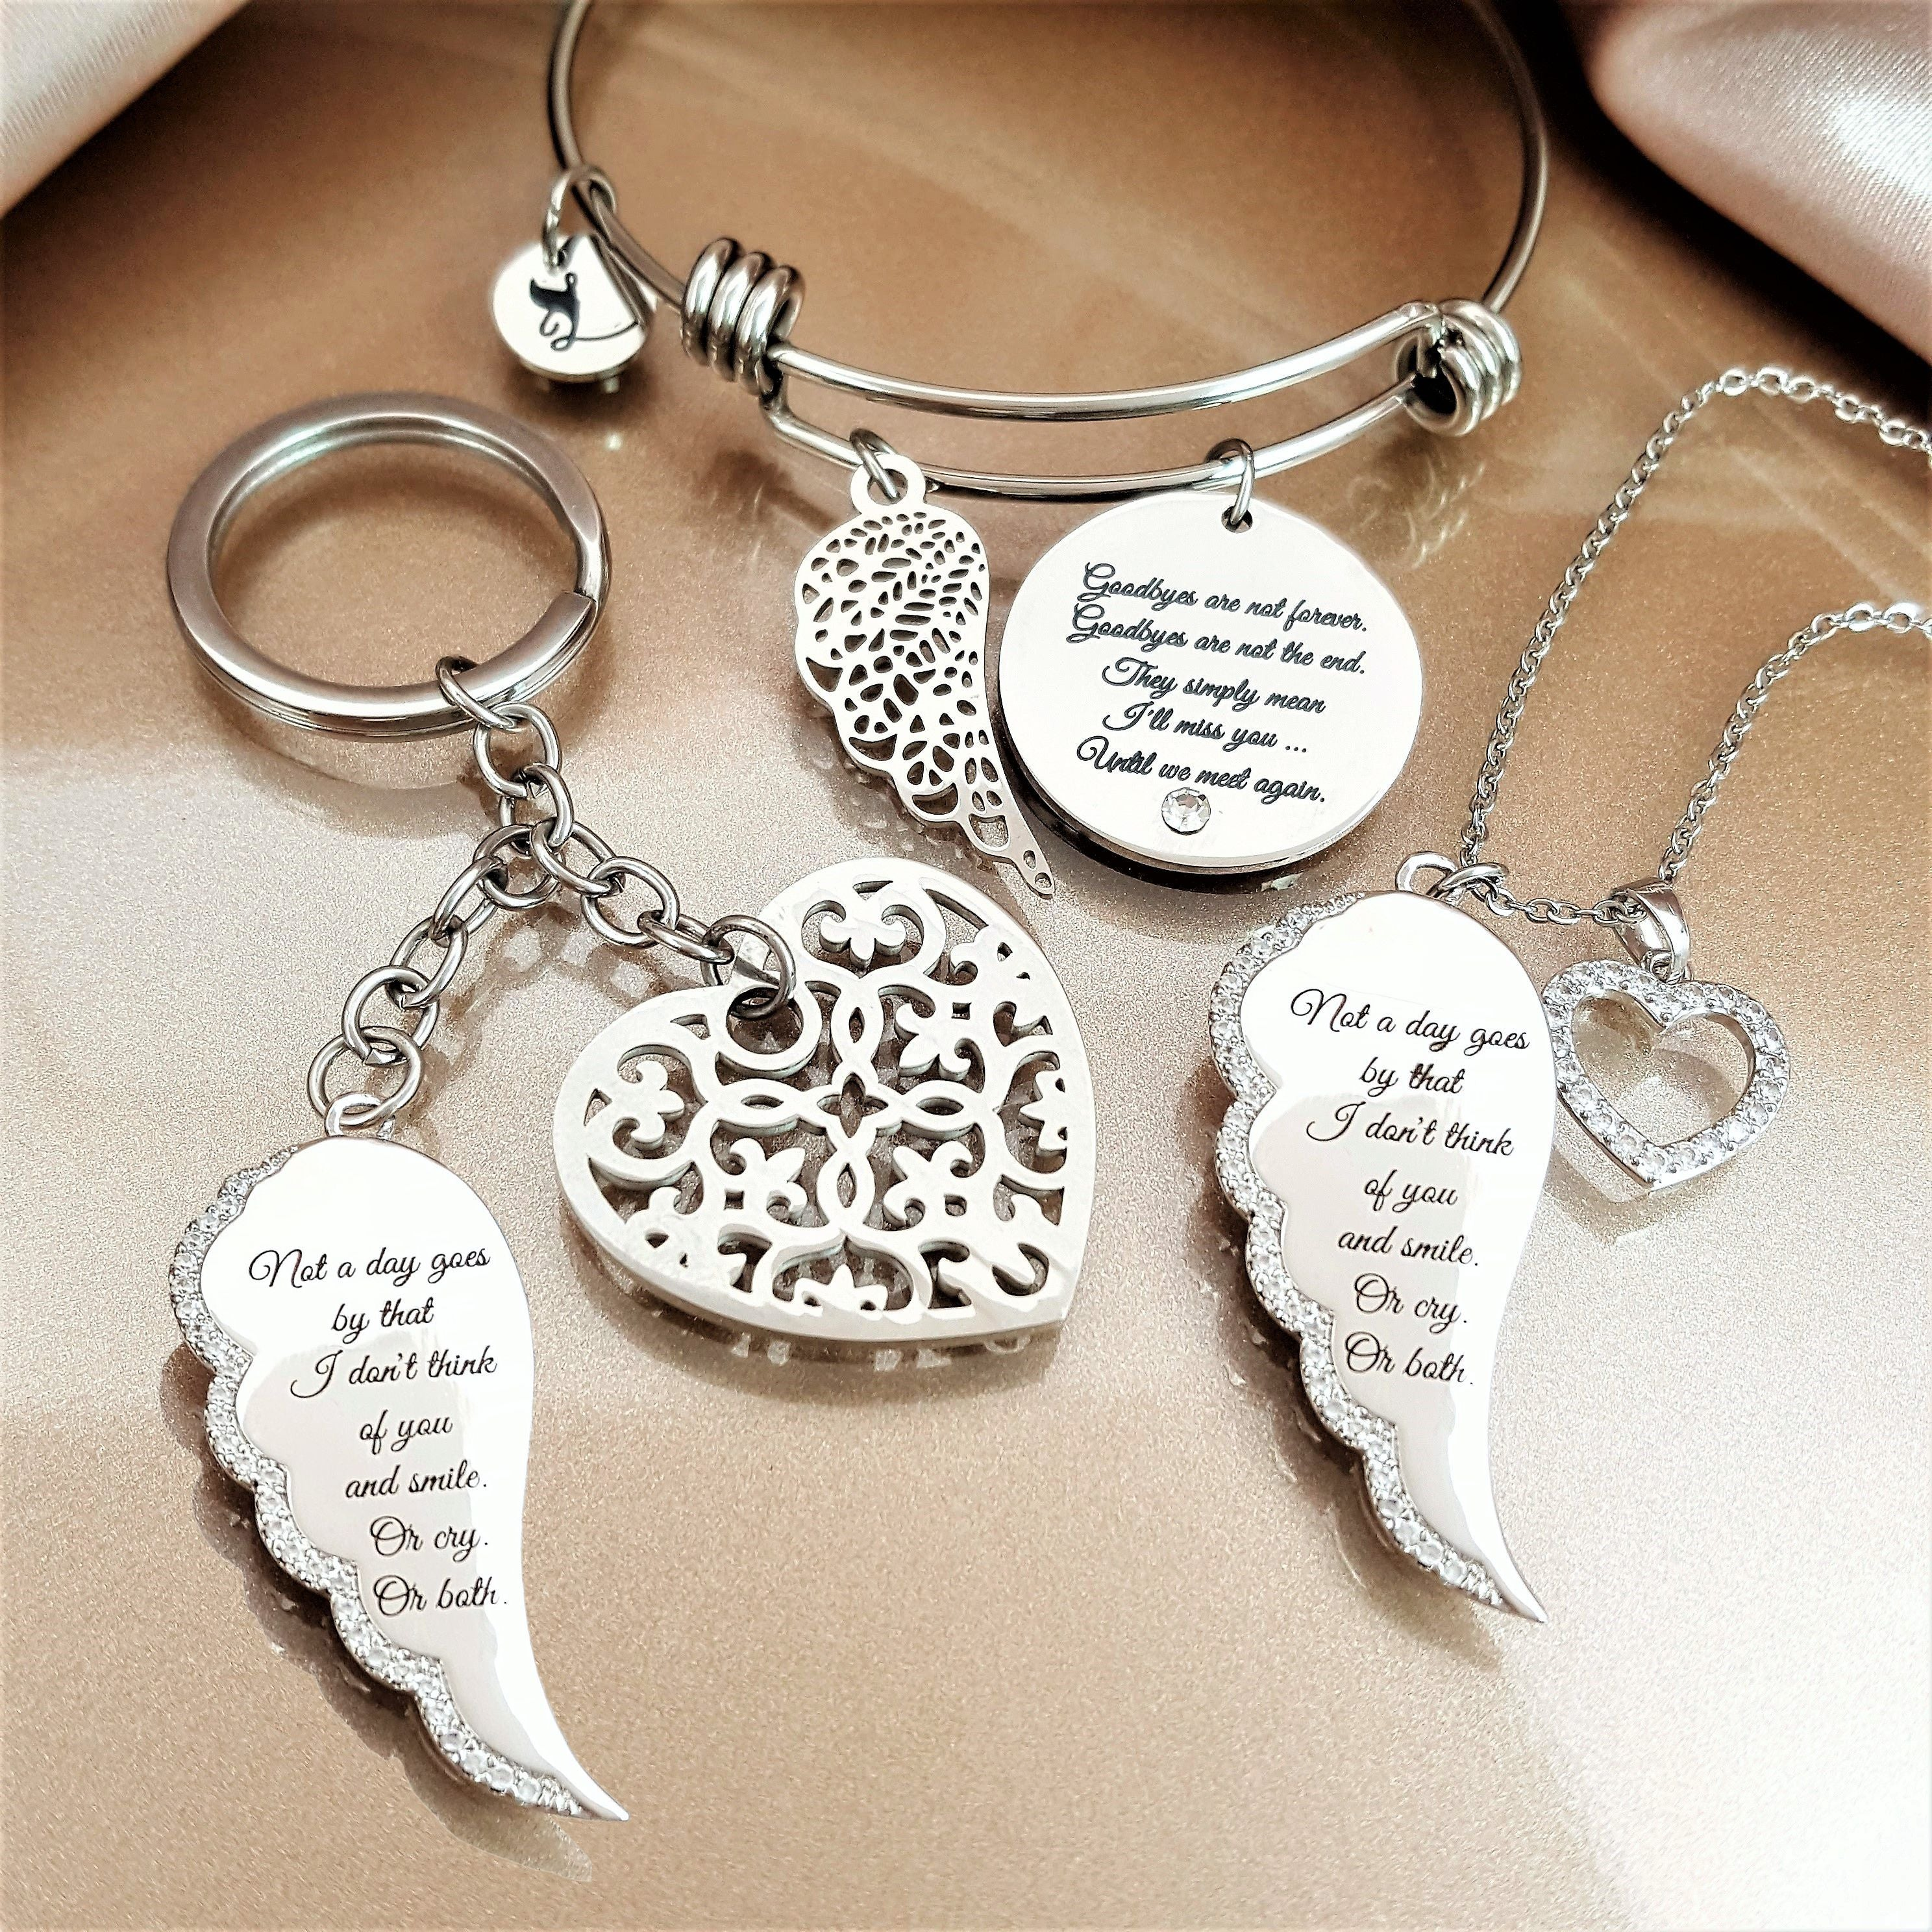 Lindas stars home of angel jewelry 3 pack i think of you and smile buycottarizona